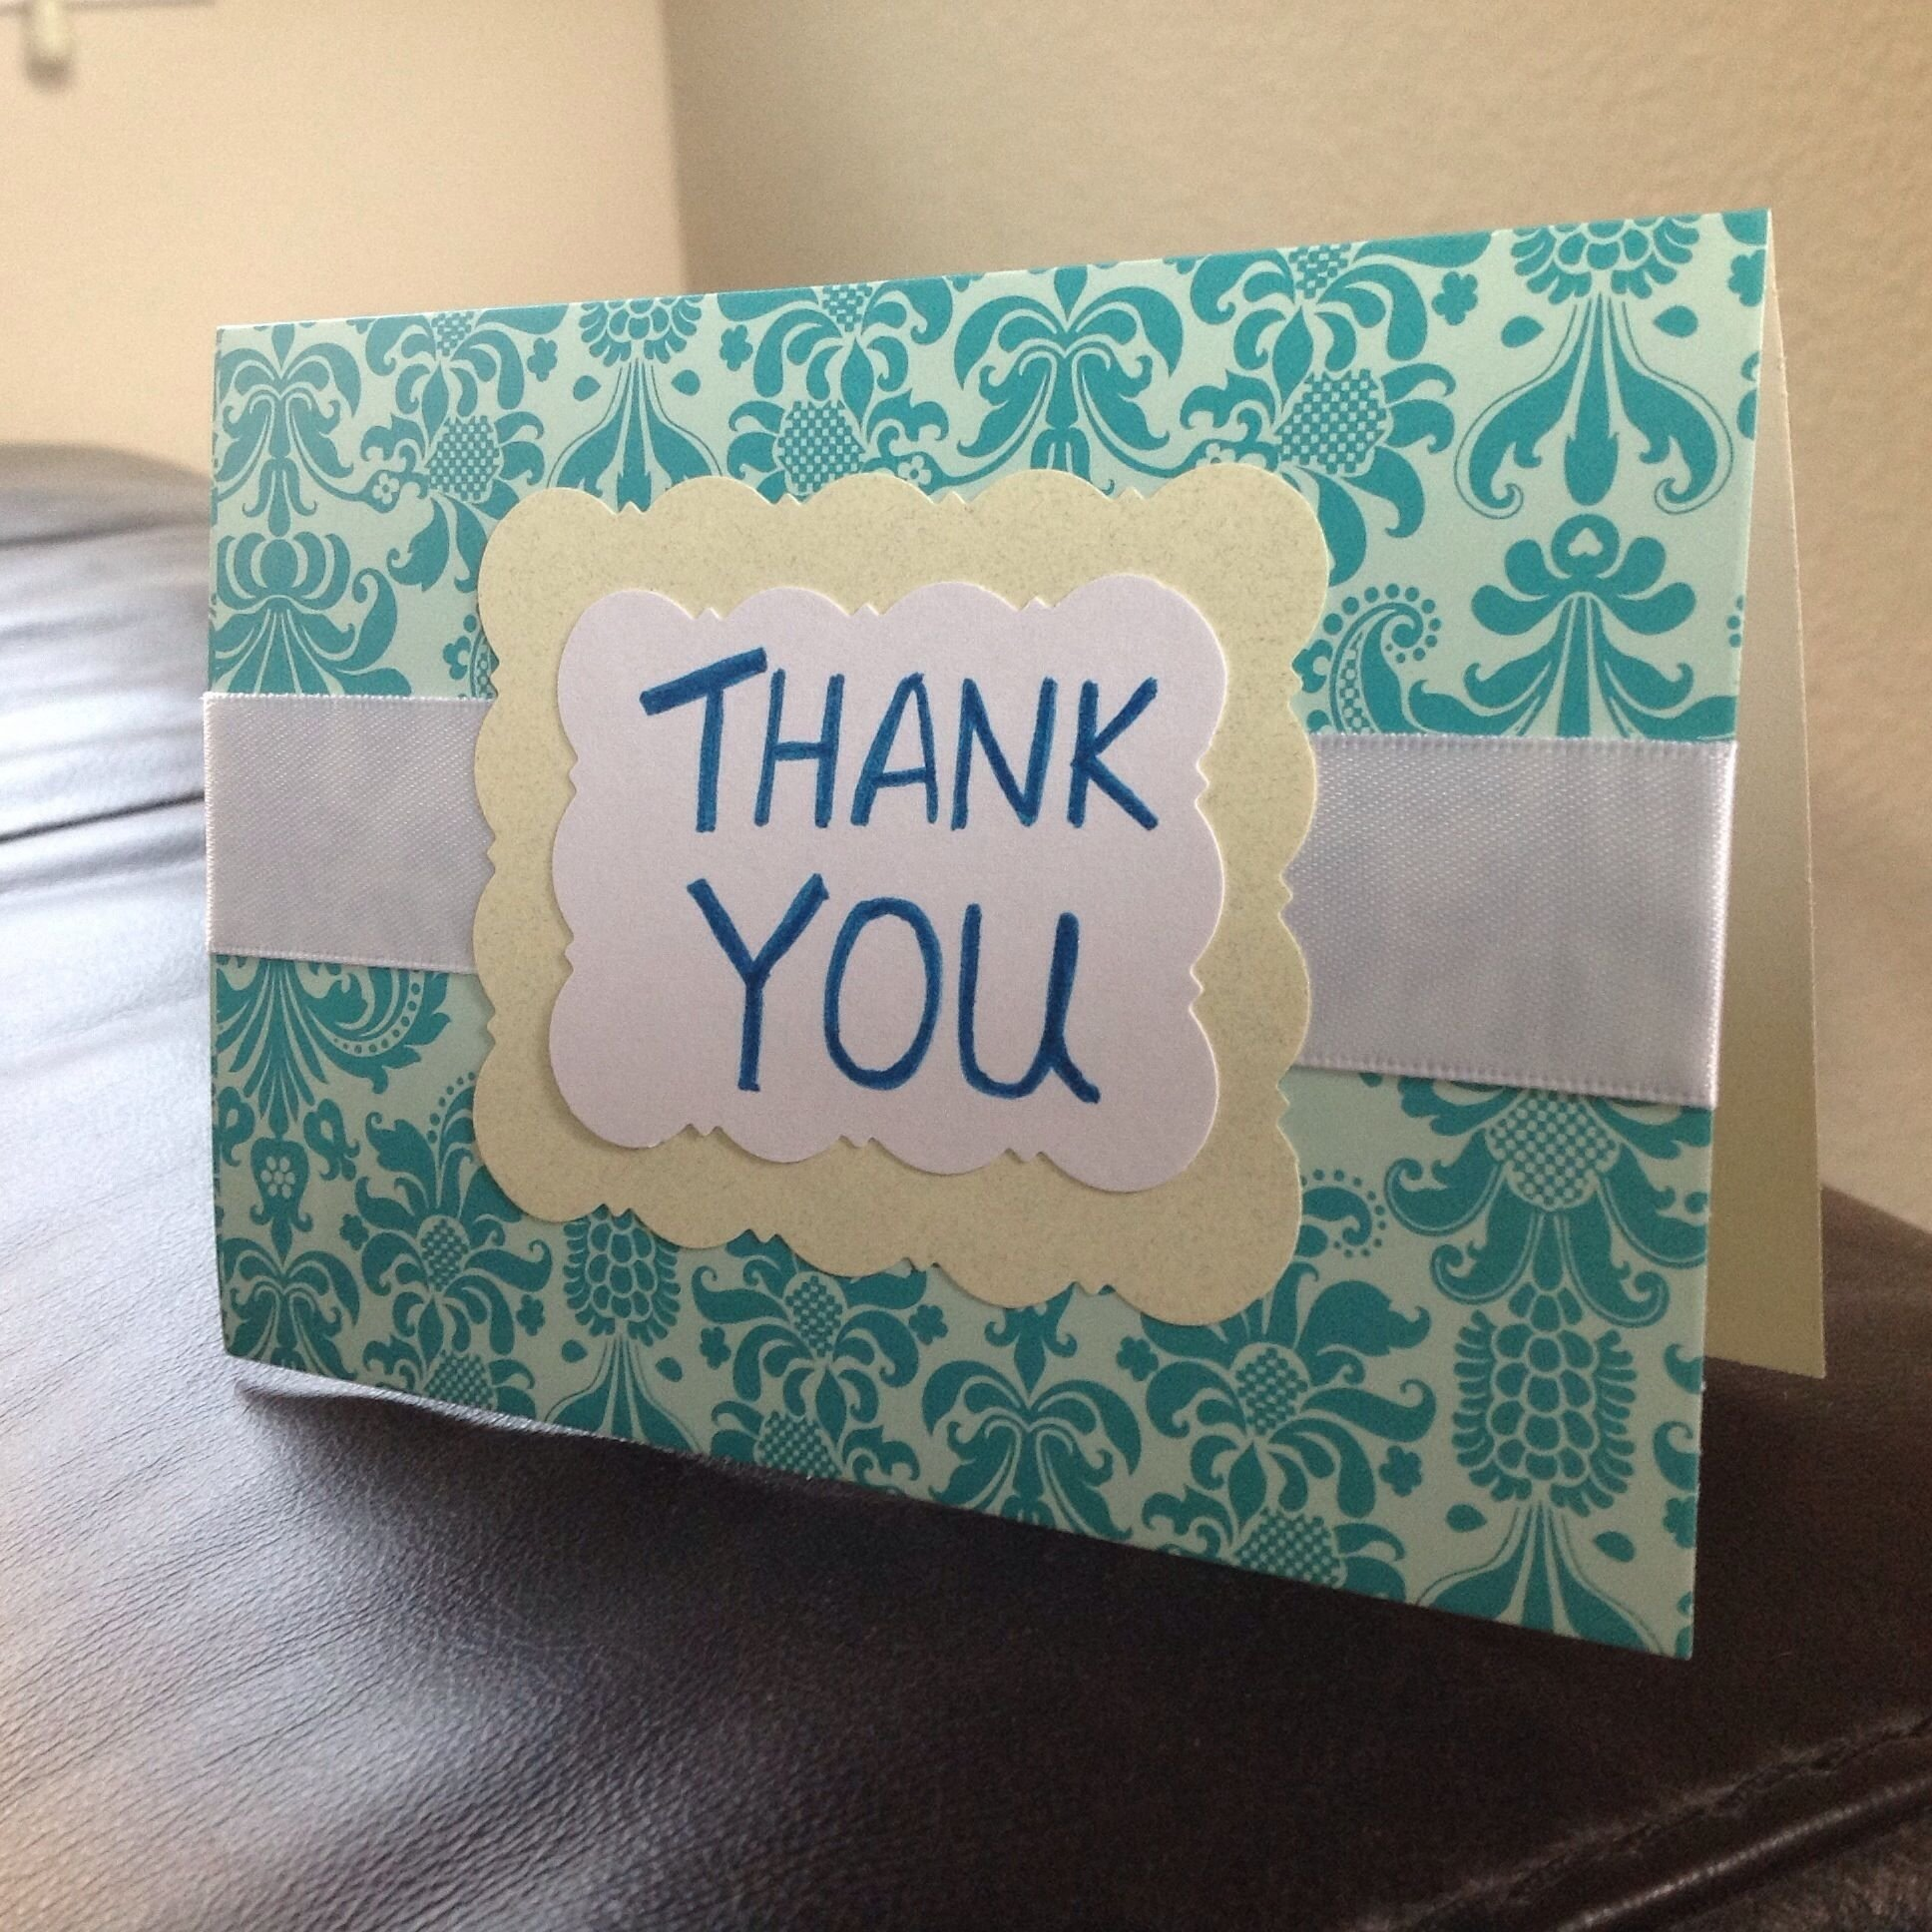 Unique Thank You Card Ideas: 10 Attractive Handmade Thank You Cards Ideas 2020